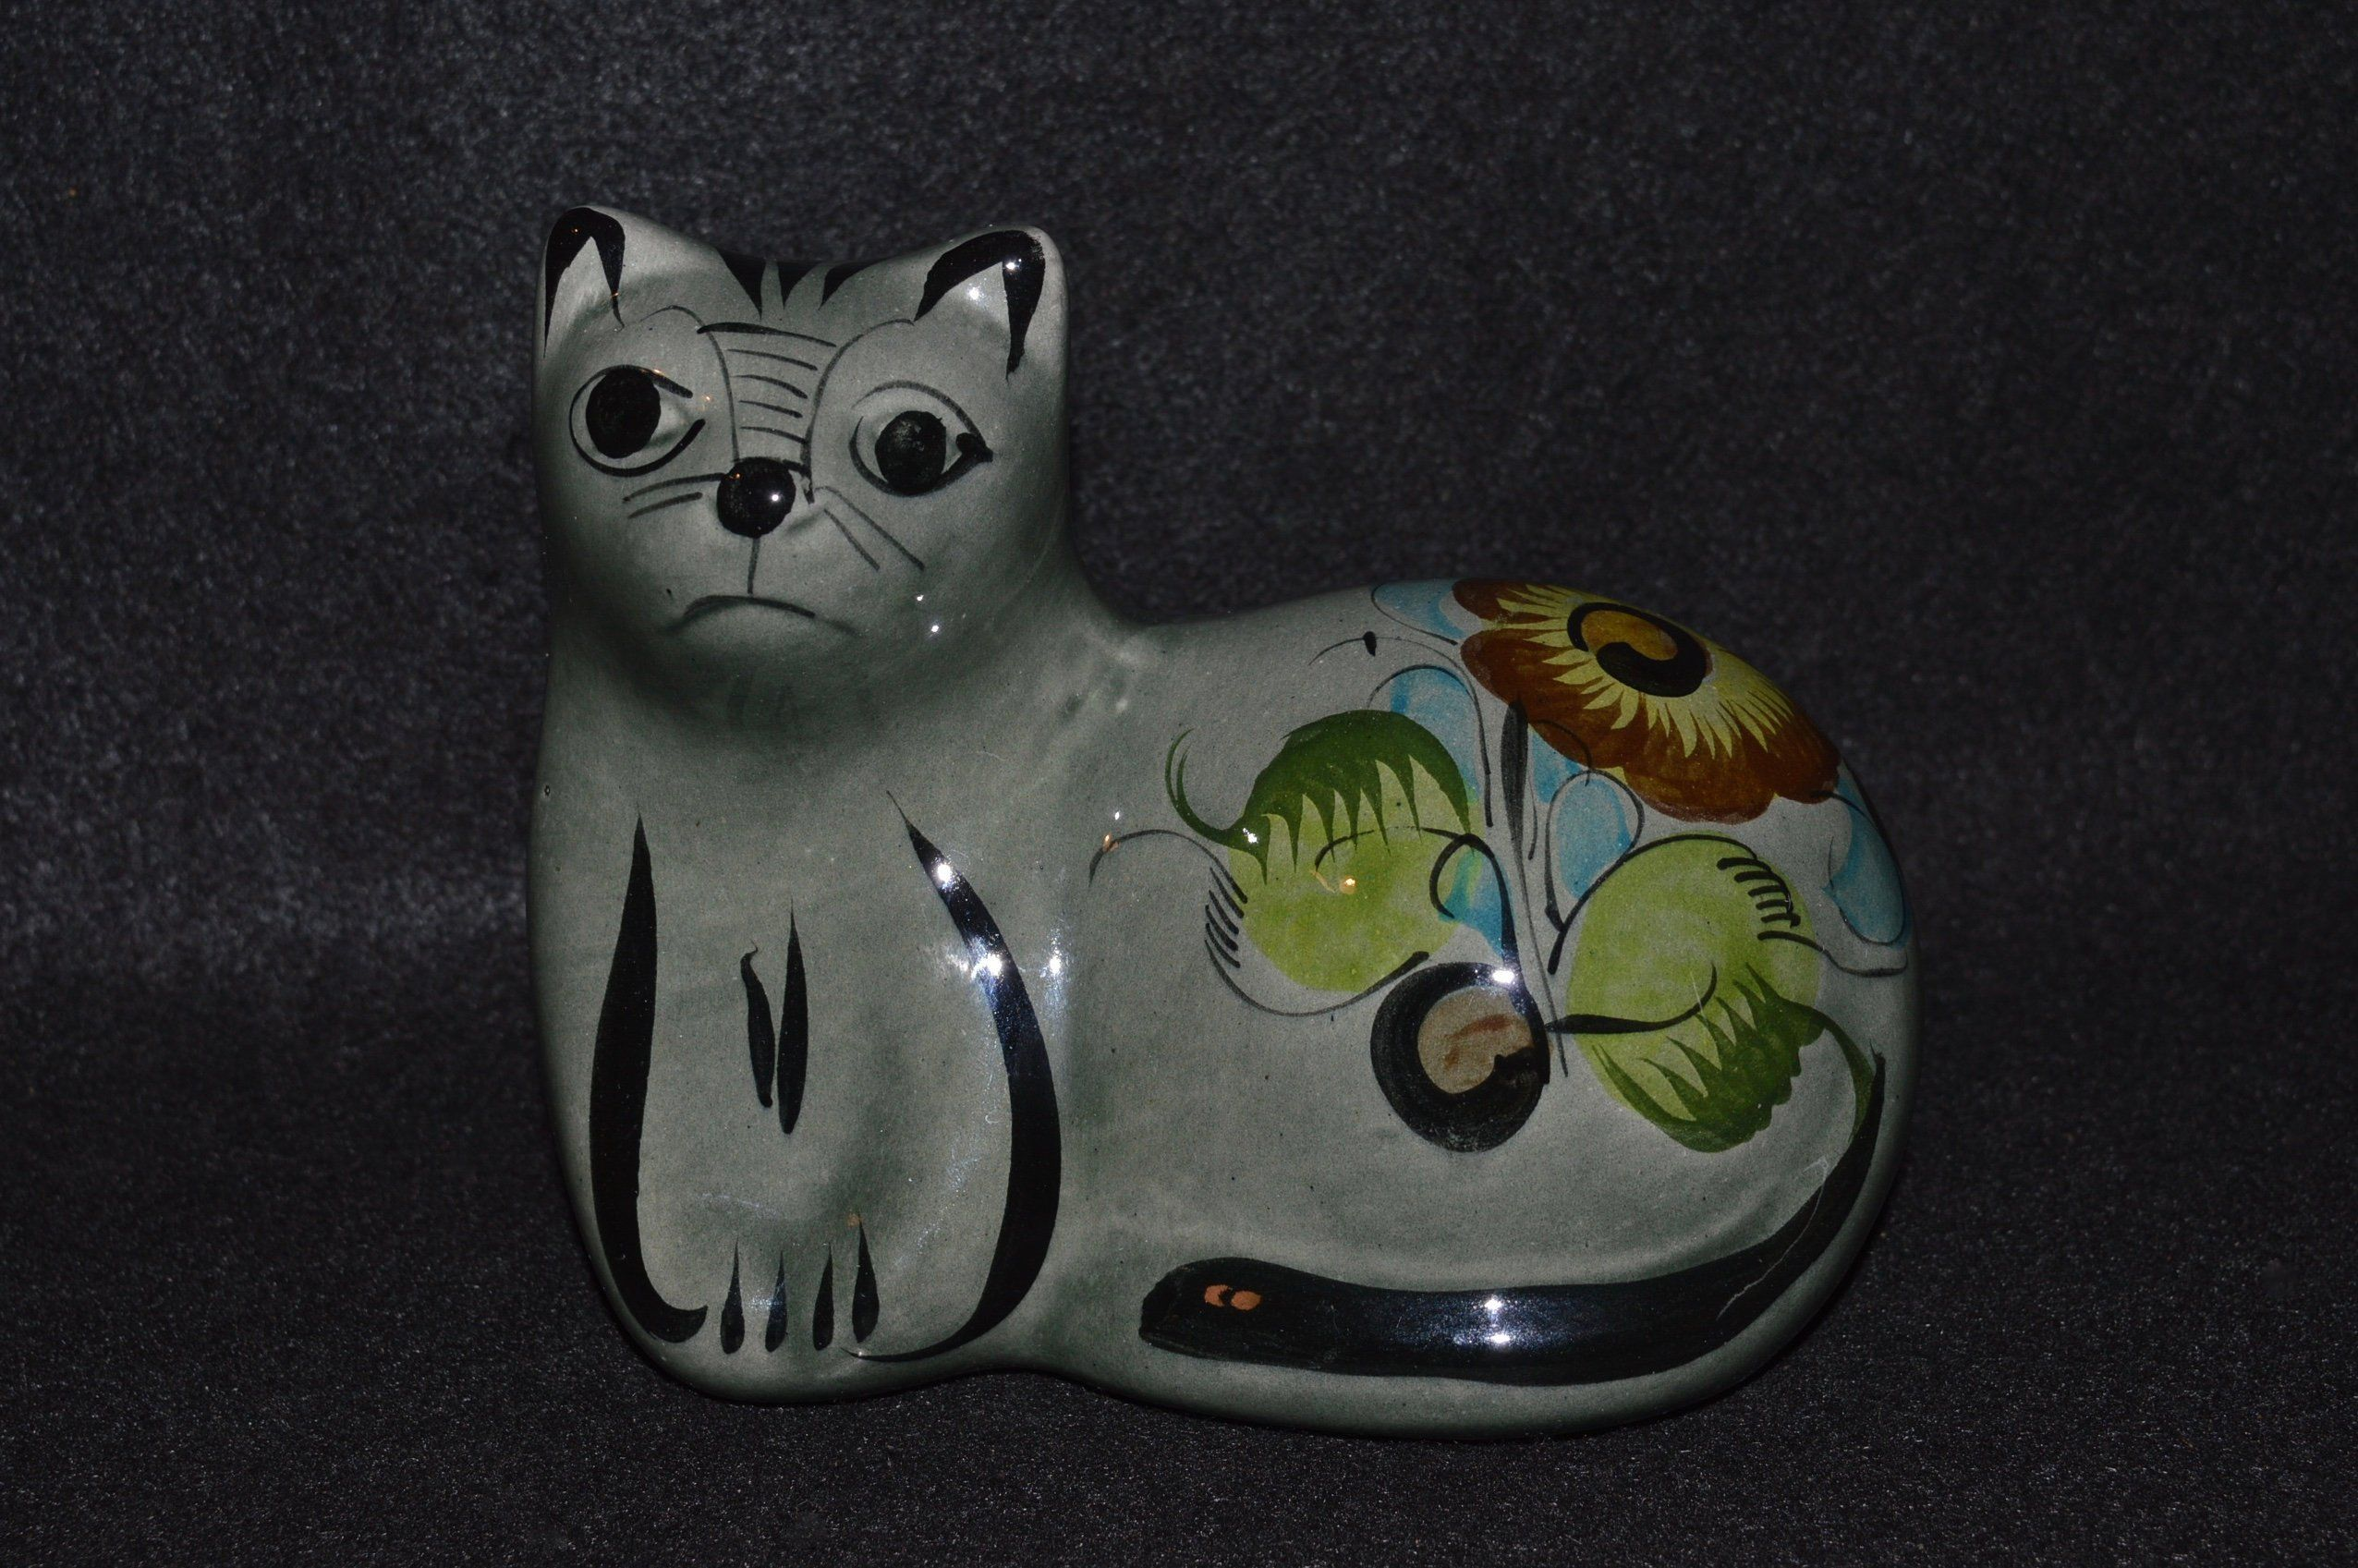 Black and White Mexican Folk Art Glazed Pottery Ceramic Large Cat Coin Bank